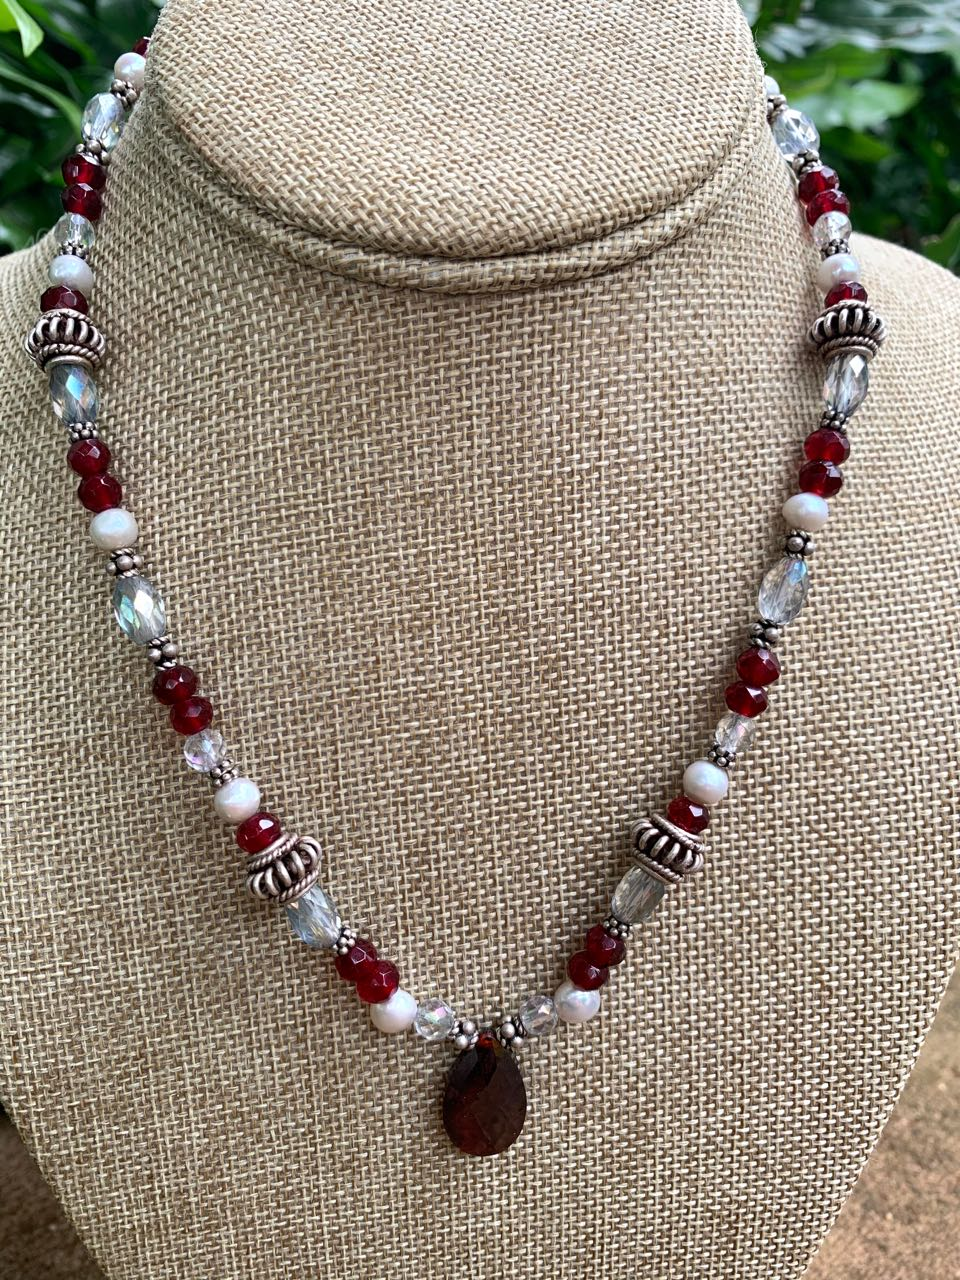 Liesel Lund: Red Quartz, Pearl, Crystal Quartz & Sterling Silver Necklace